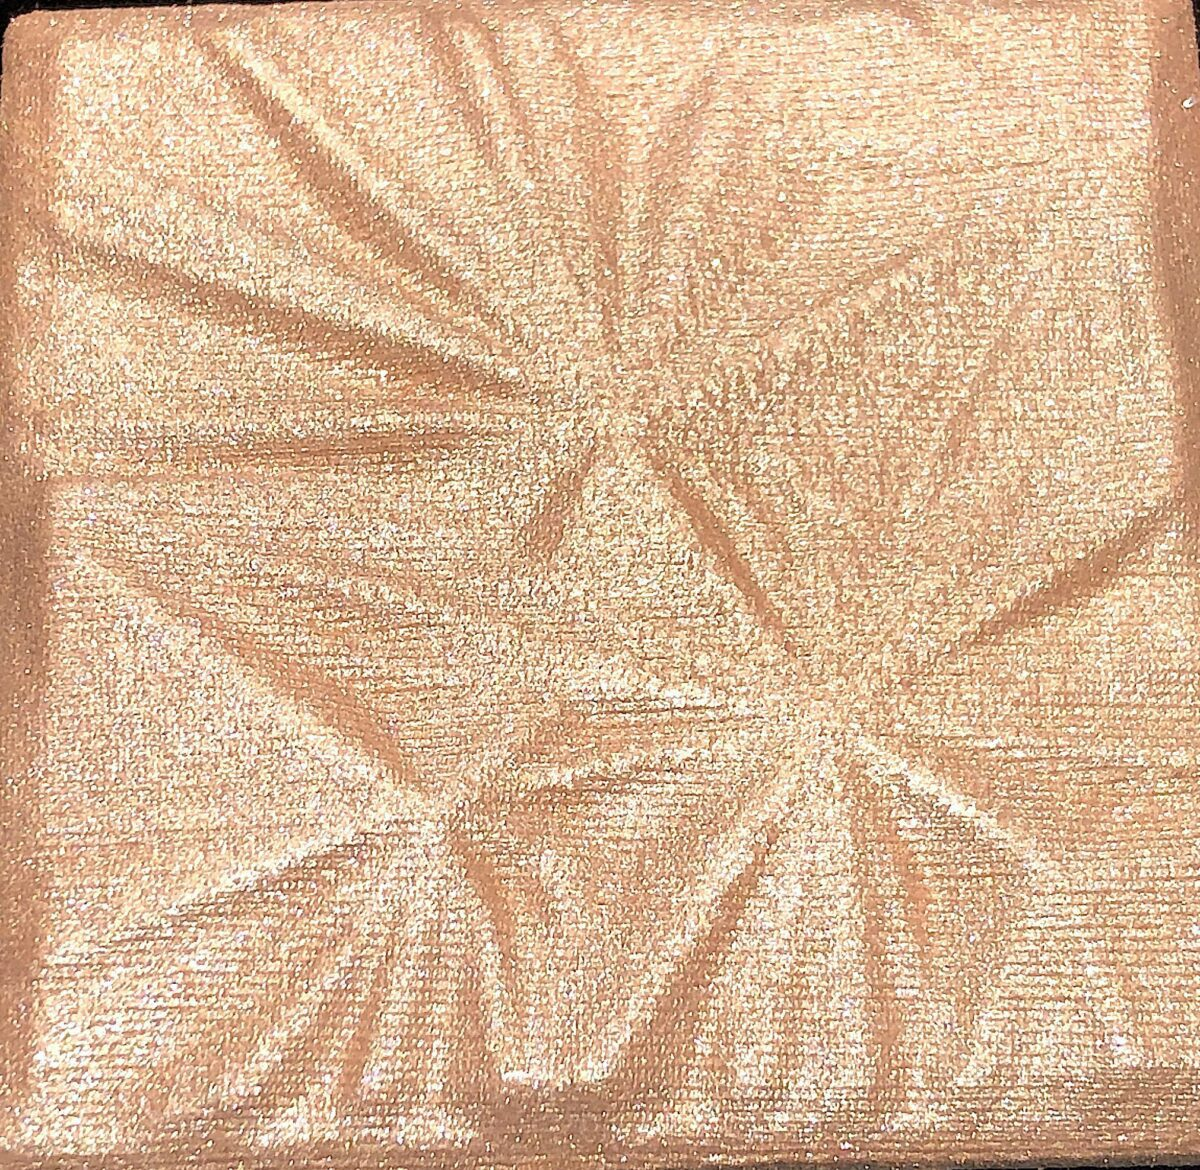 THE BOBBI BROWN LUXE ILLUMINATING HIGHLIGHTER IN THE SHADE GOLDEN HOUR